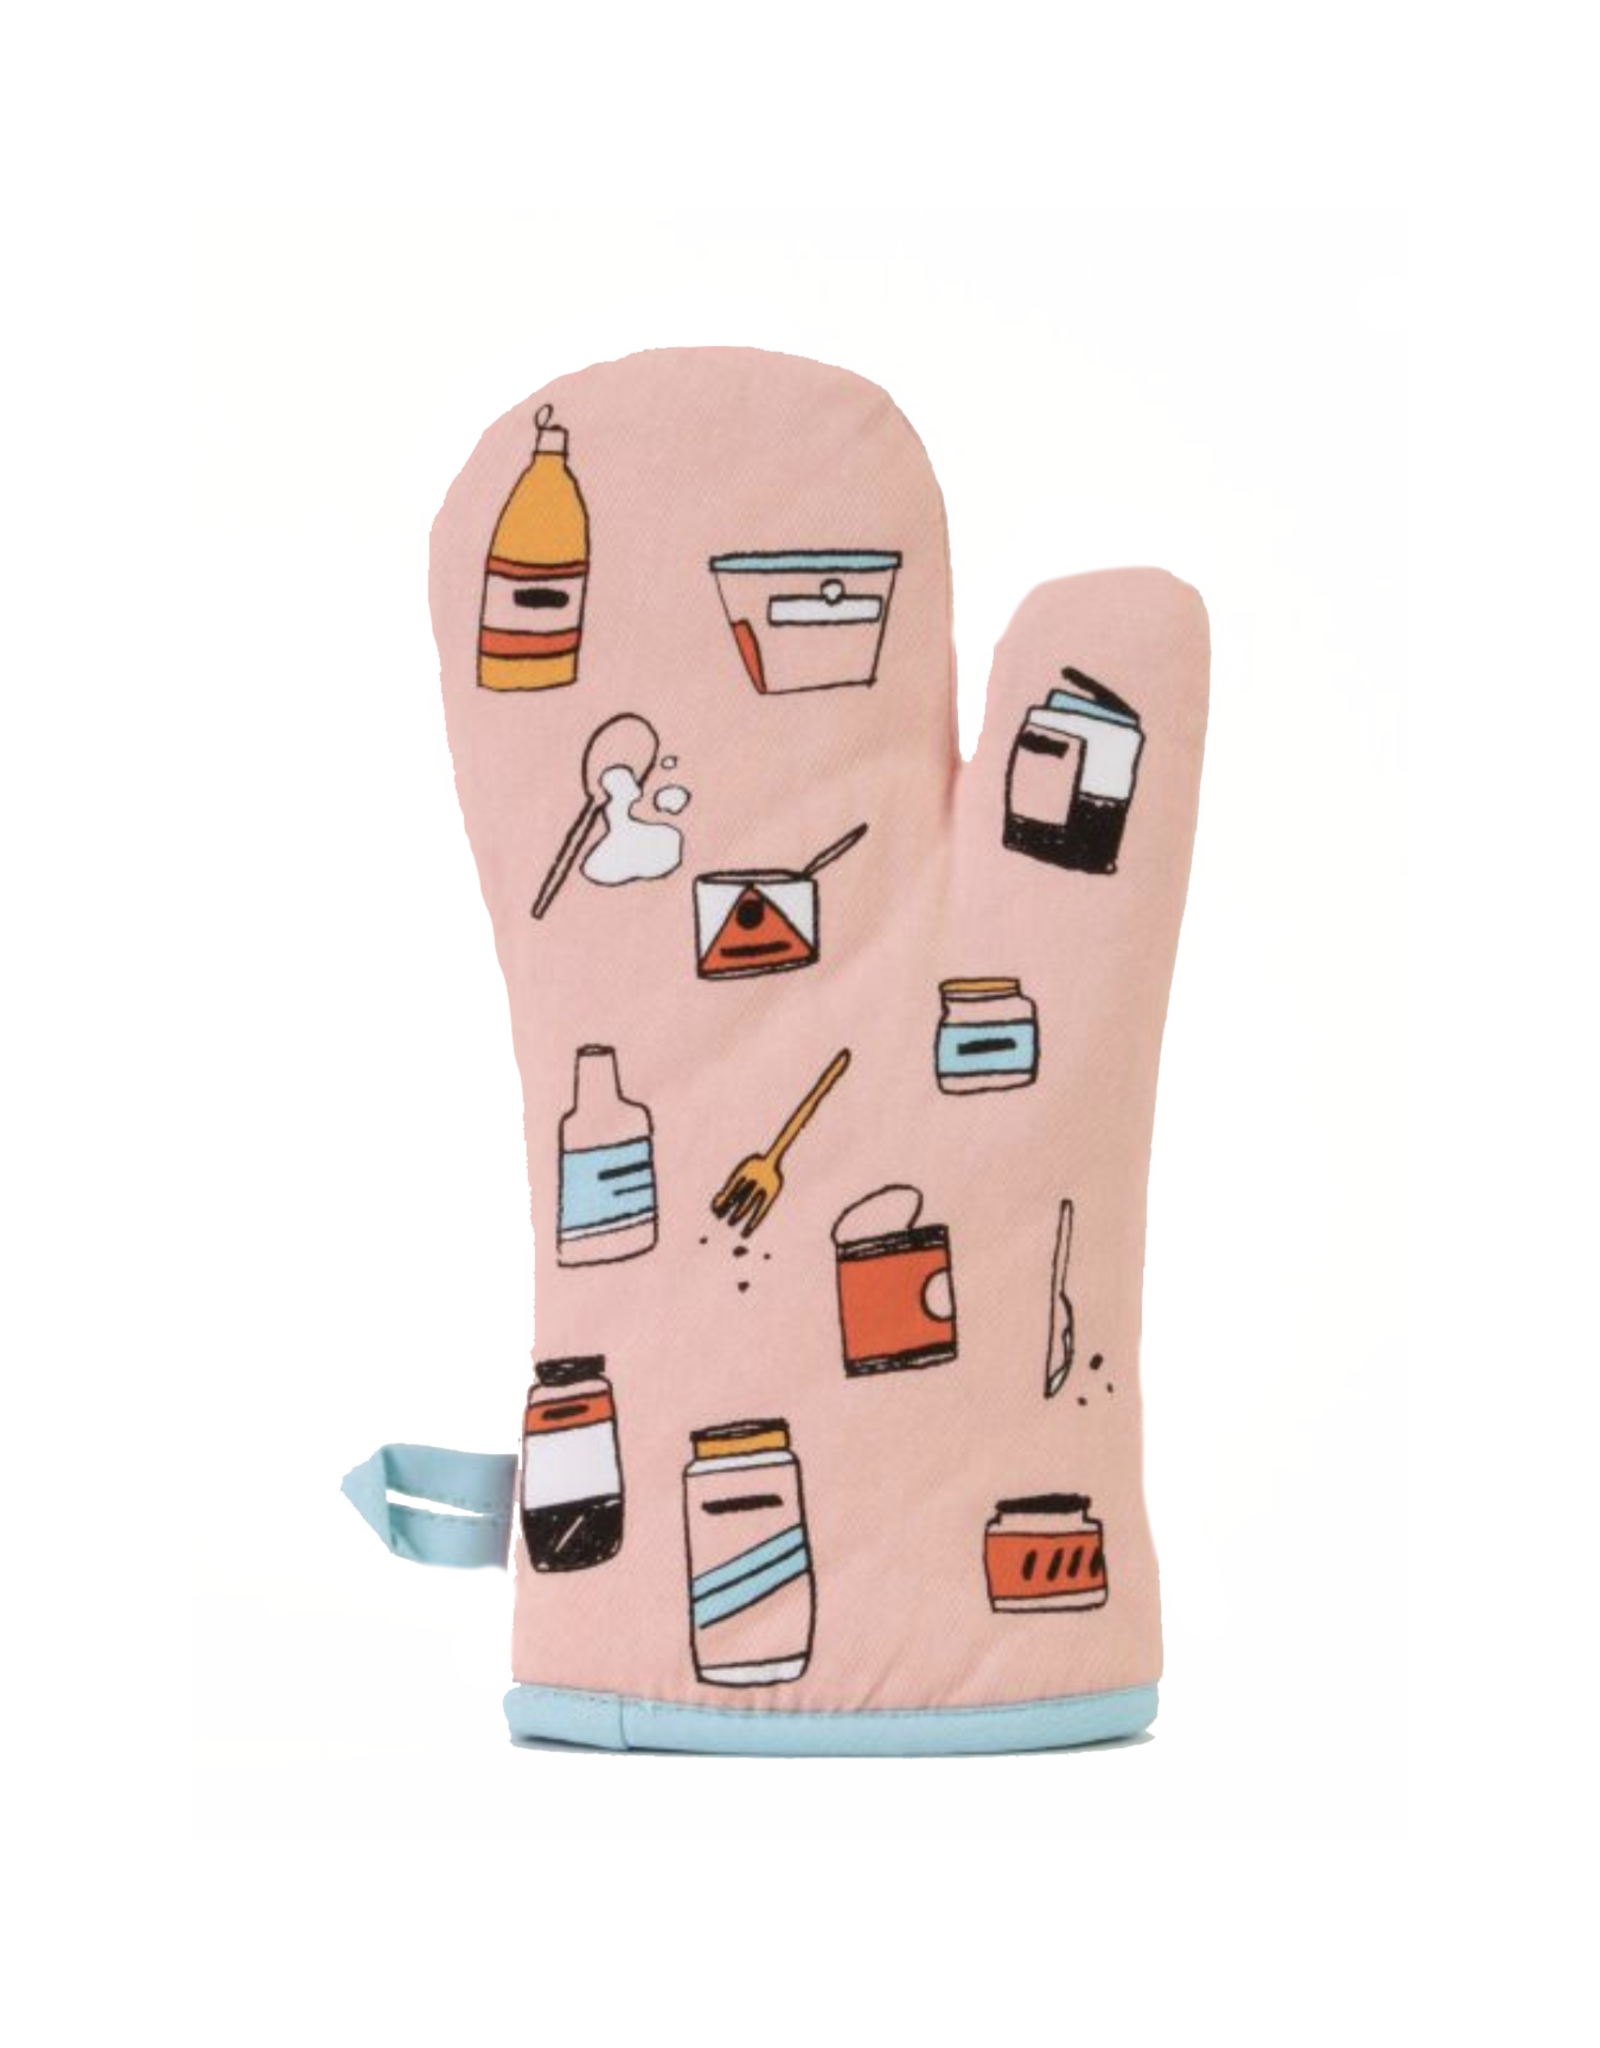 5 PM Me: I Love Cooking, 7 PM Me: Fuck This Oven Mitt